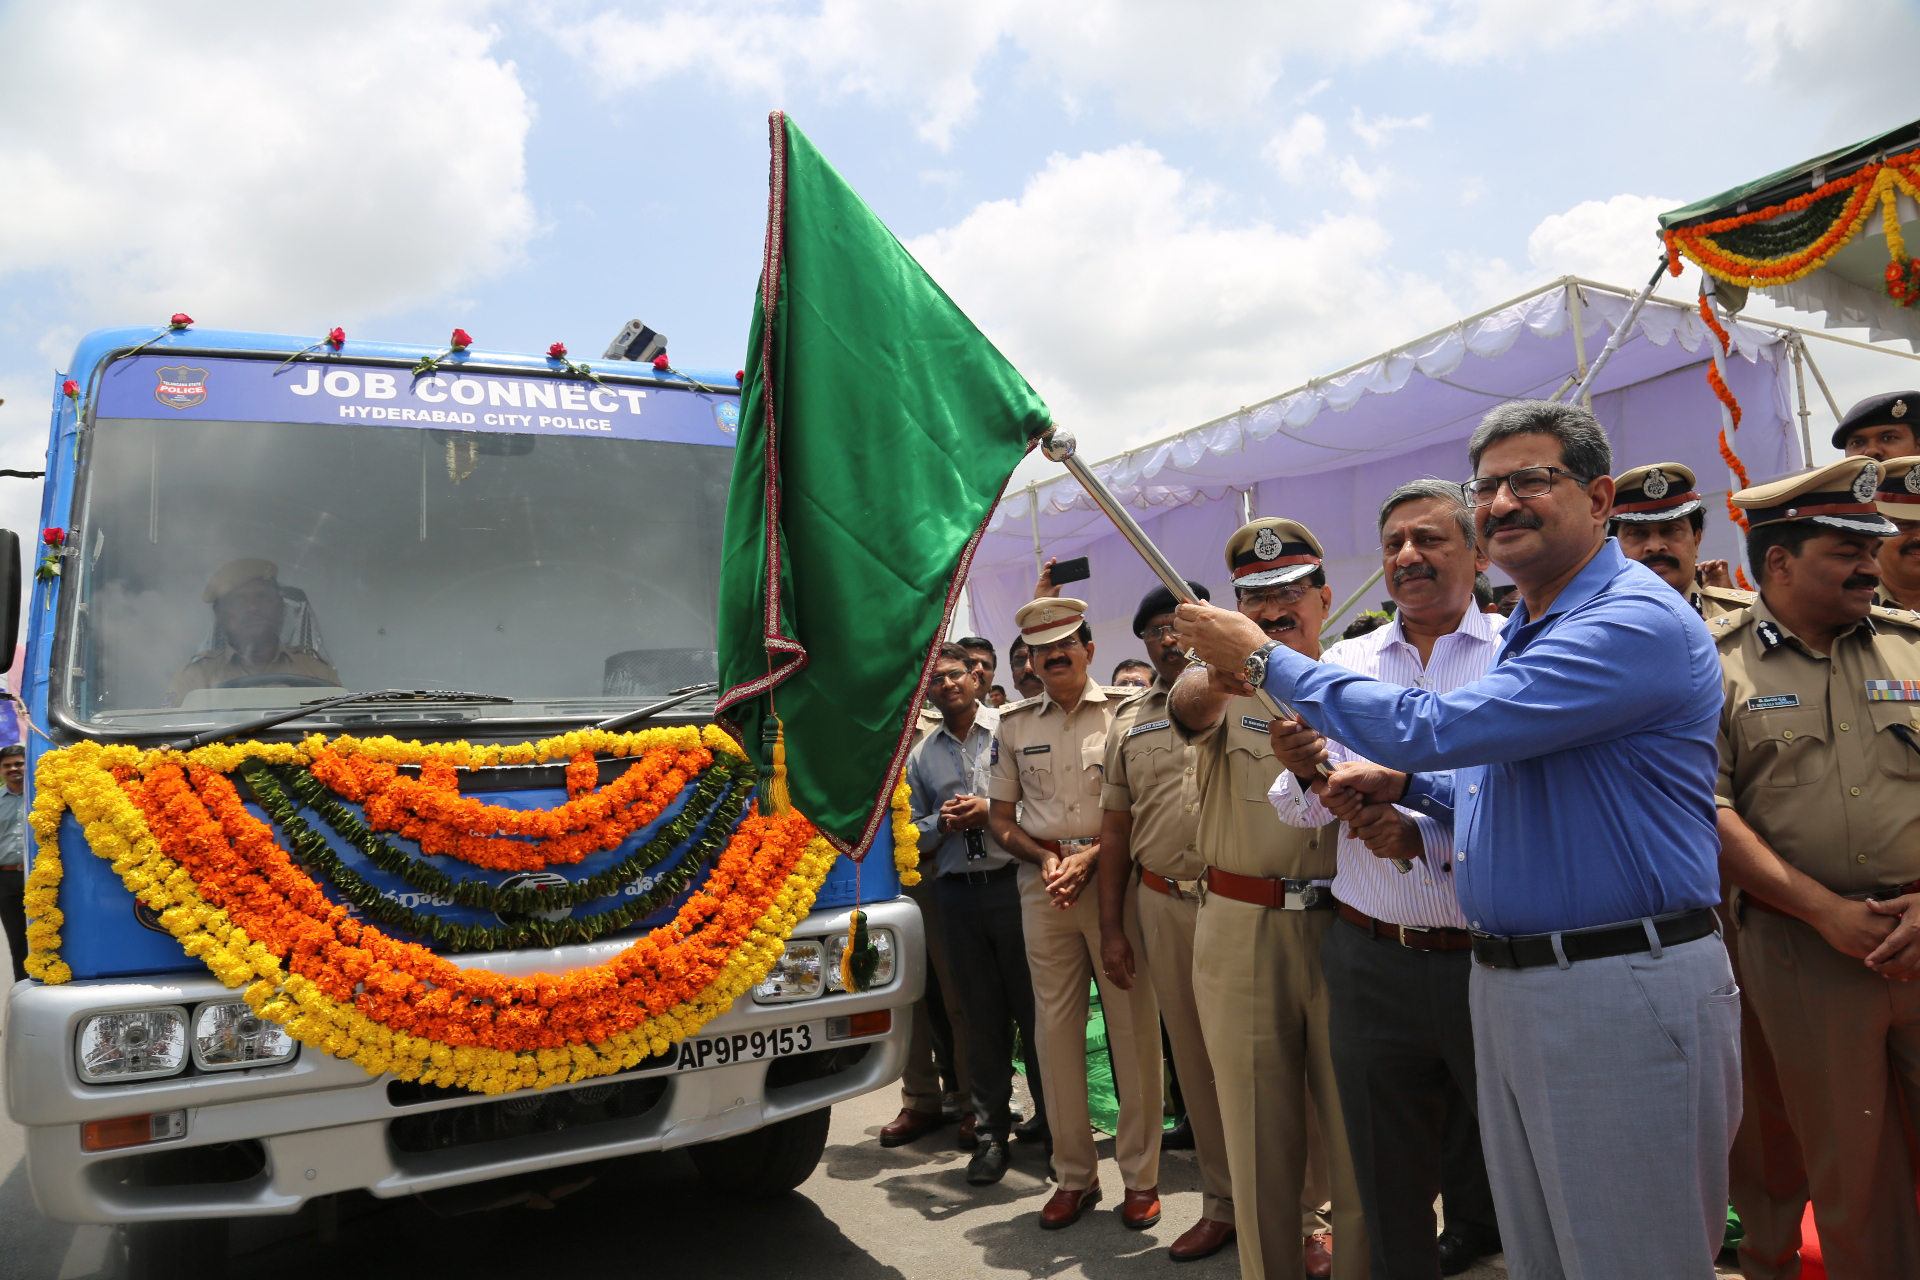 DGP launches Job Connect Van